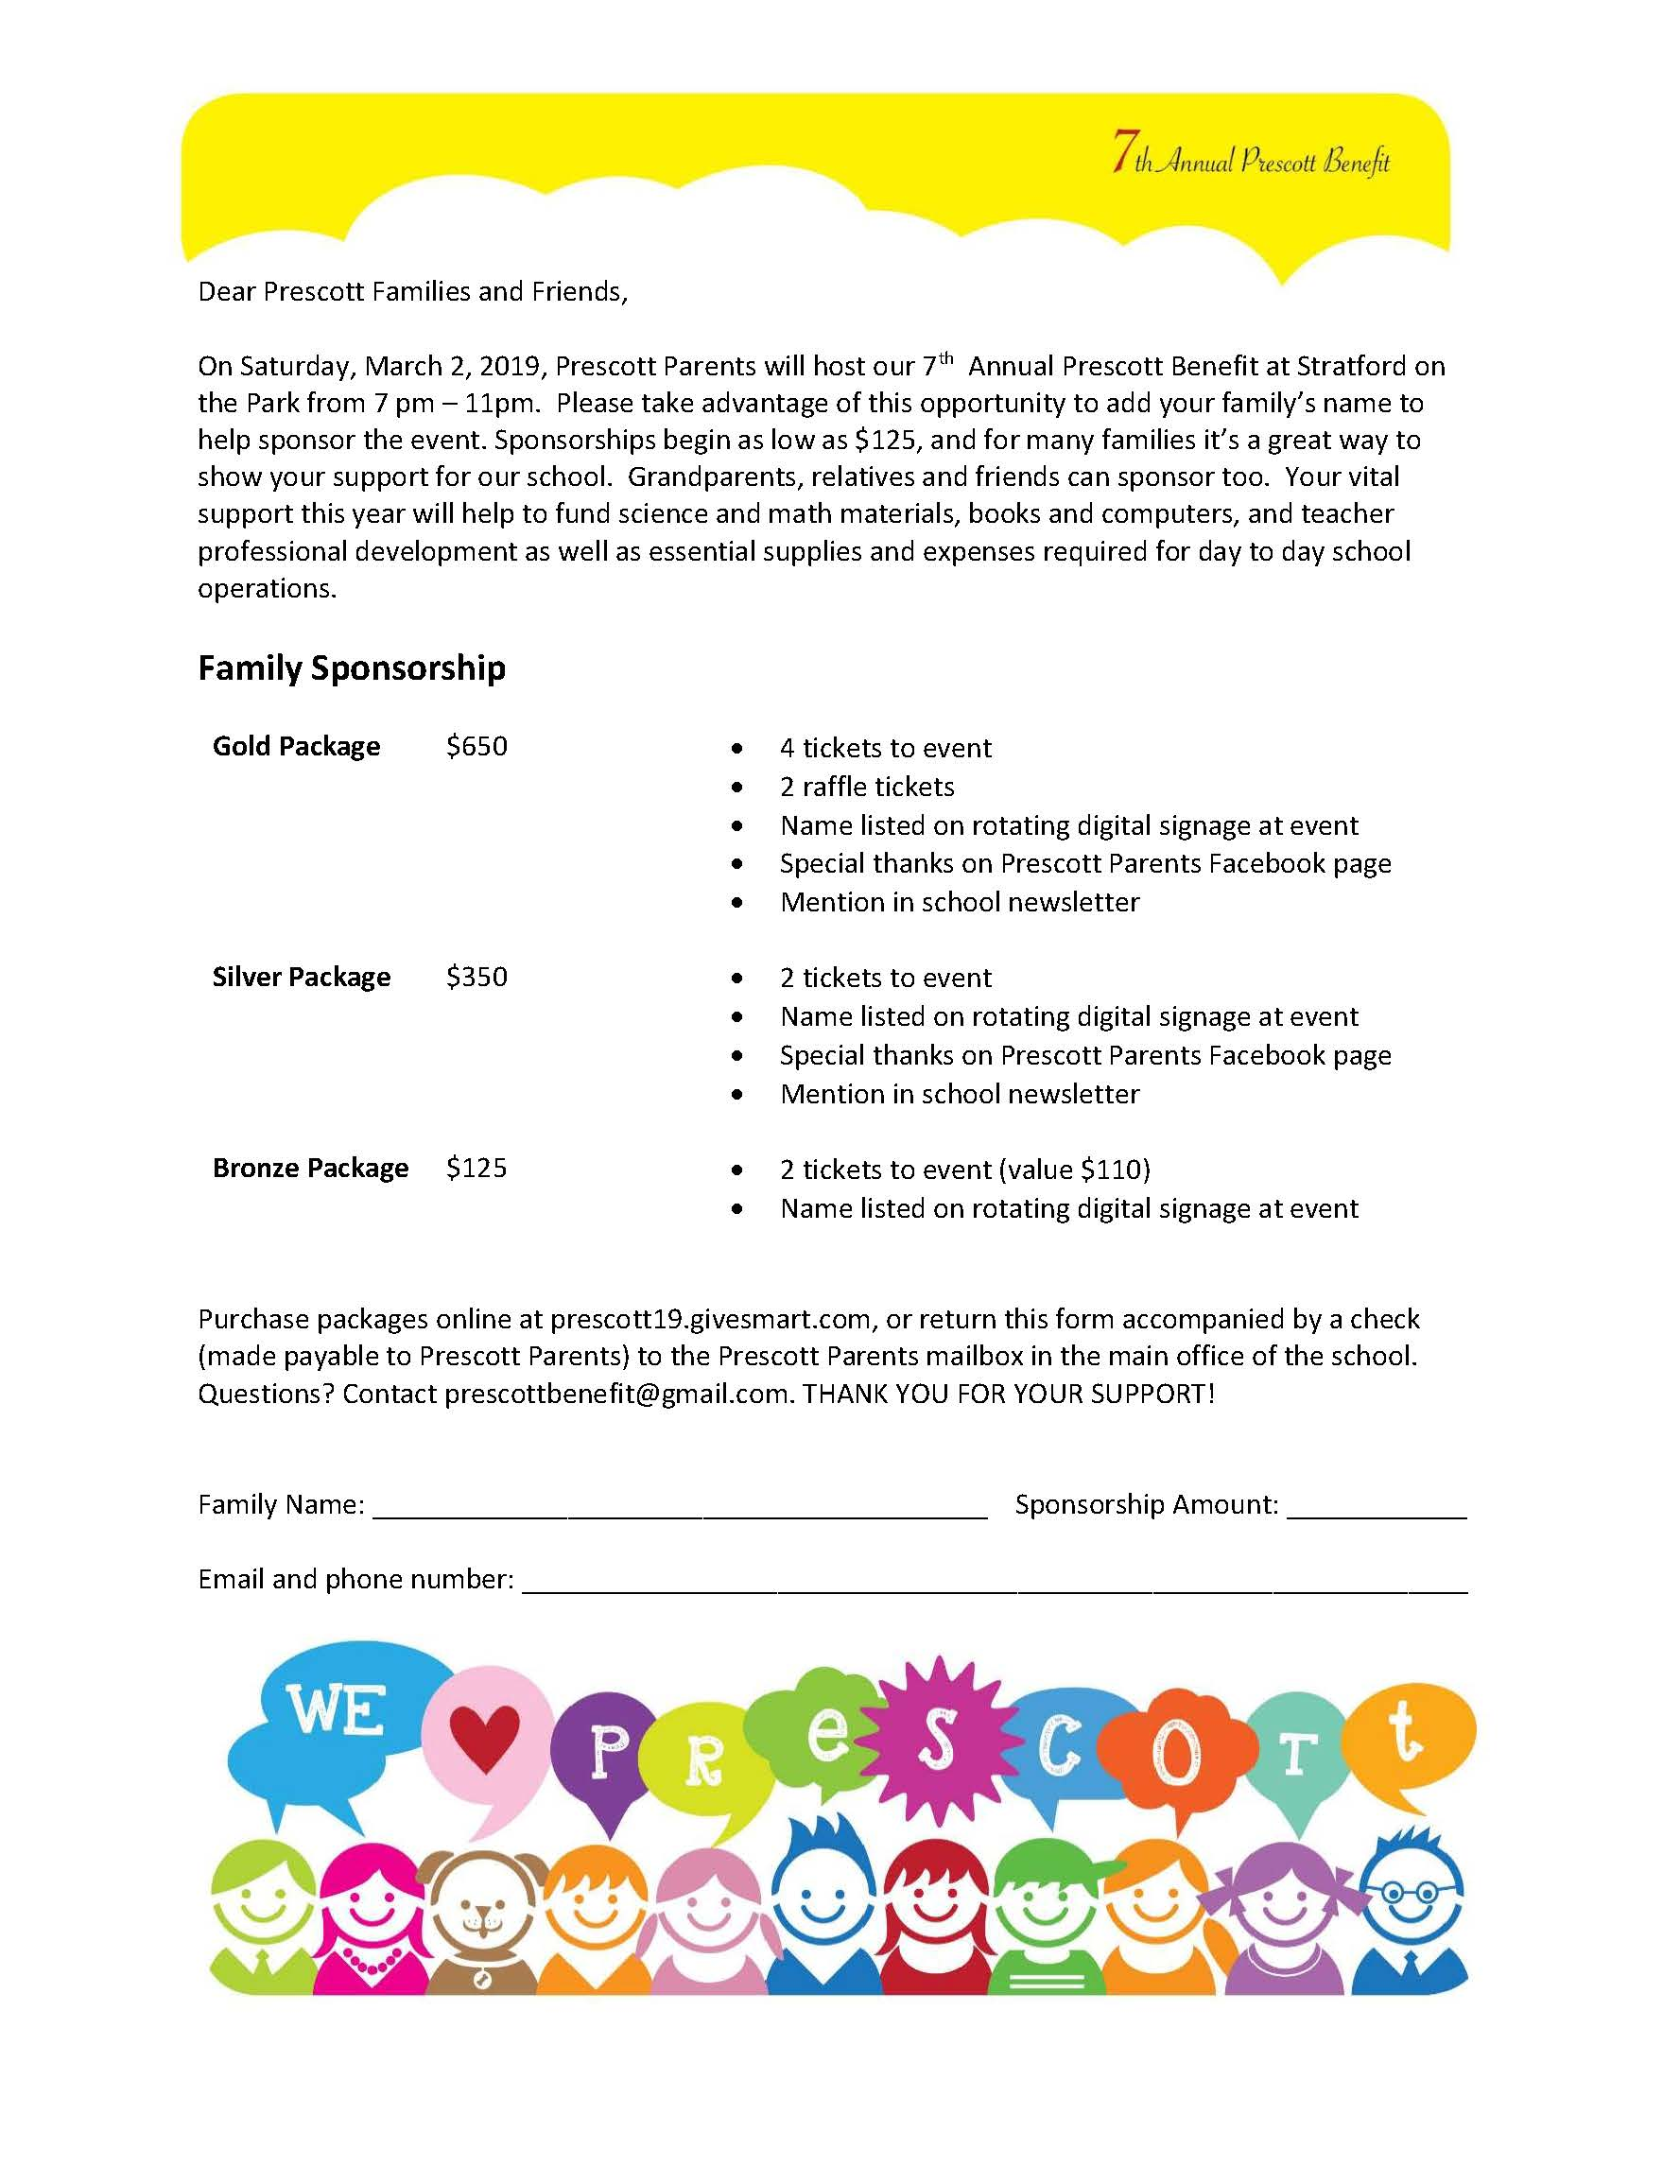 Prescott Benefit Family Sponsorship Form 2019_Page_1